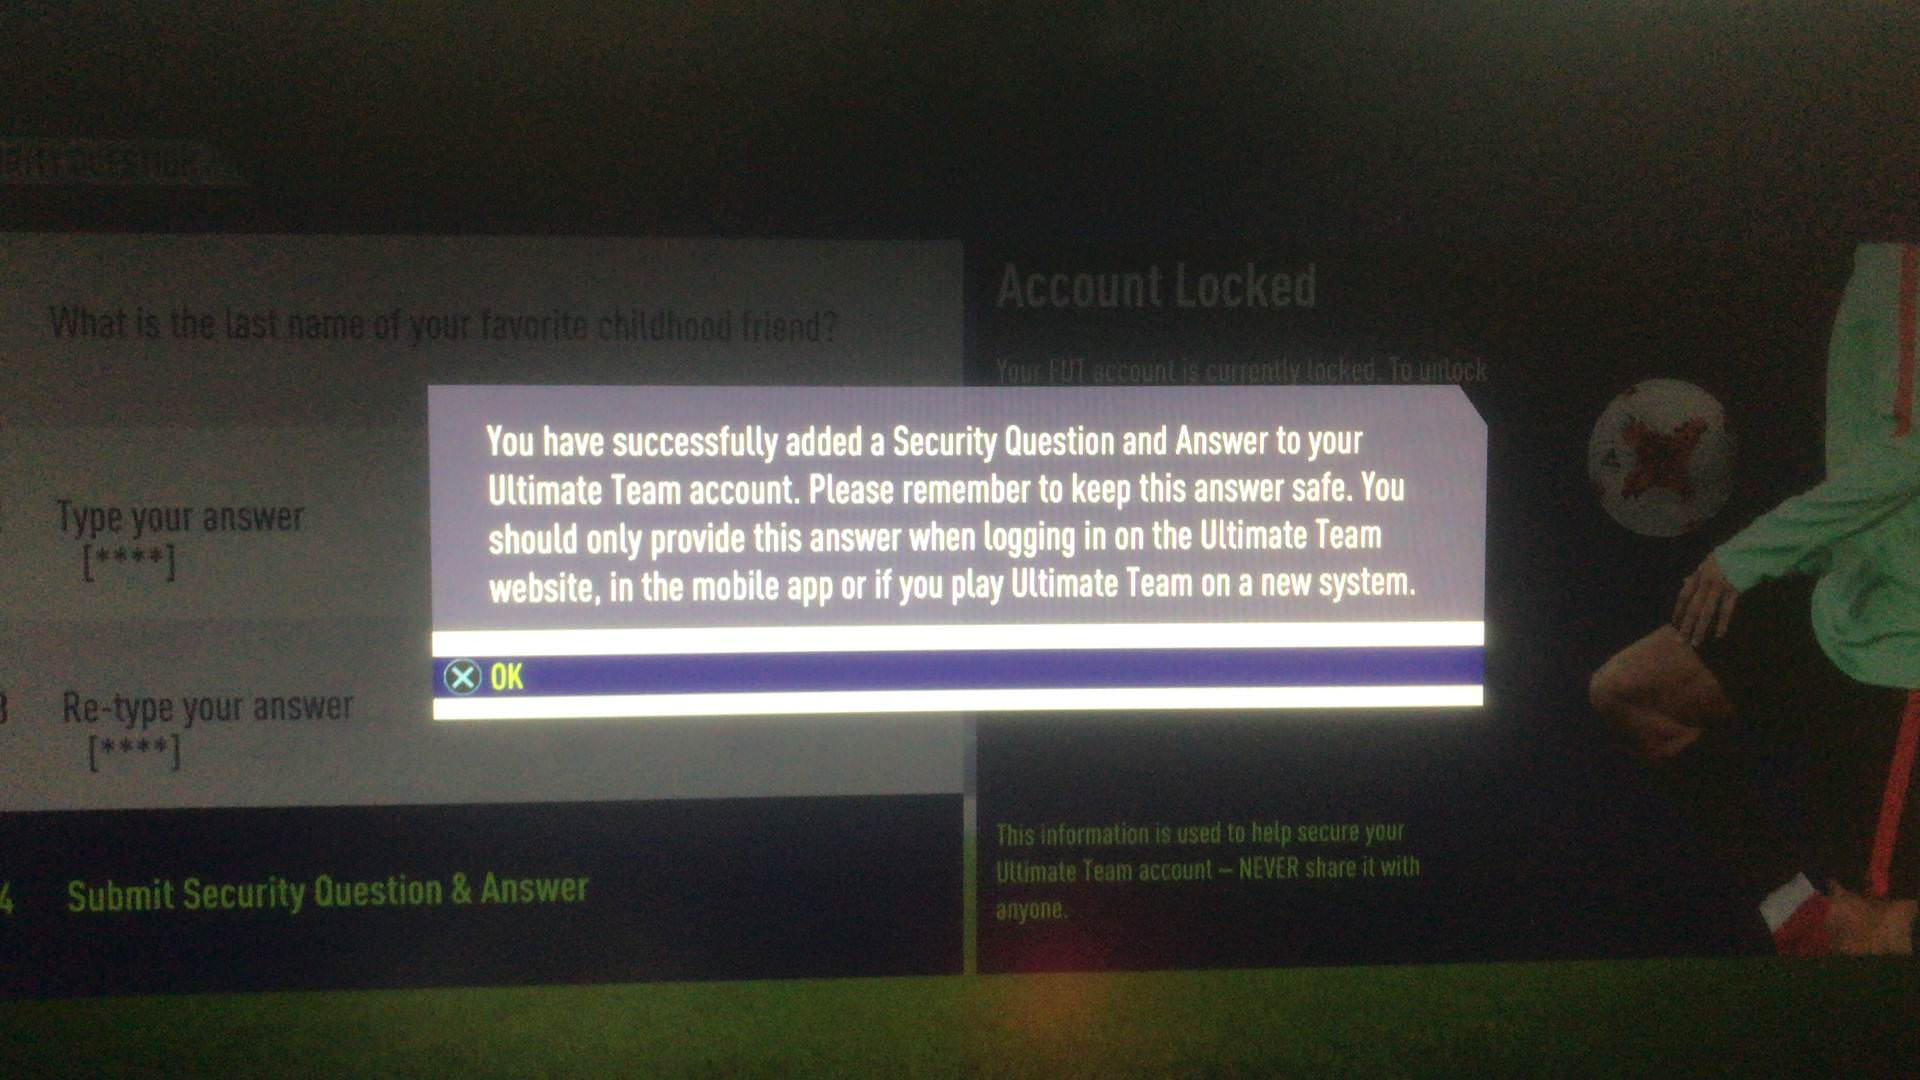 What Should I Do If I Forgot My Fut Security Answer